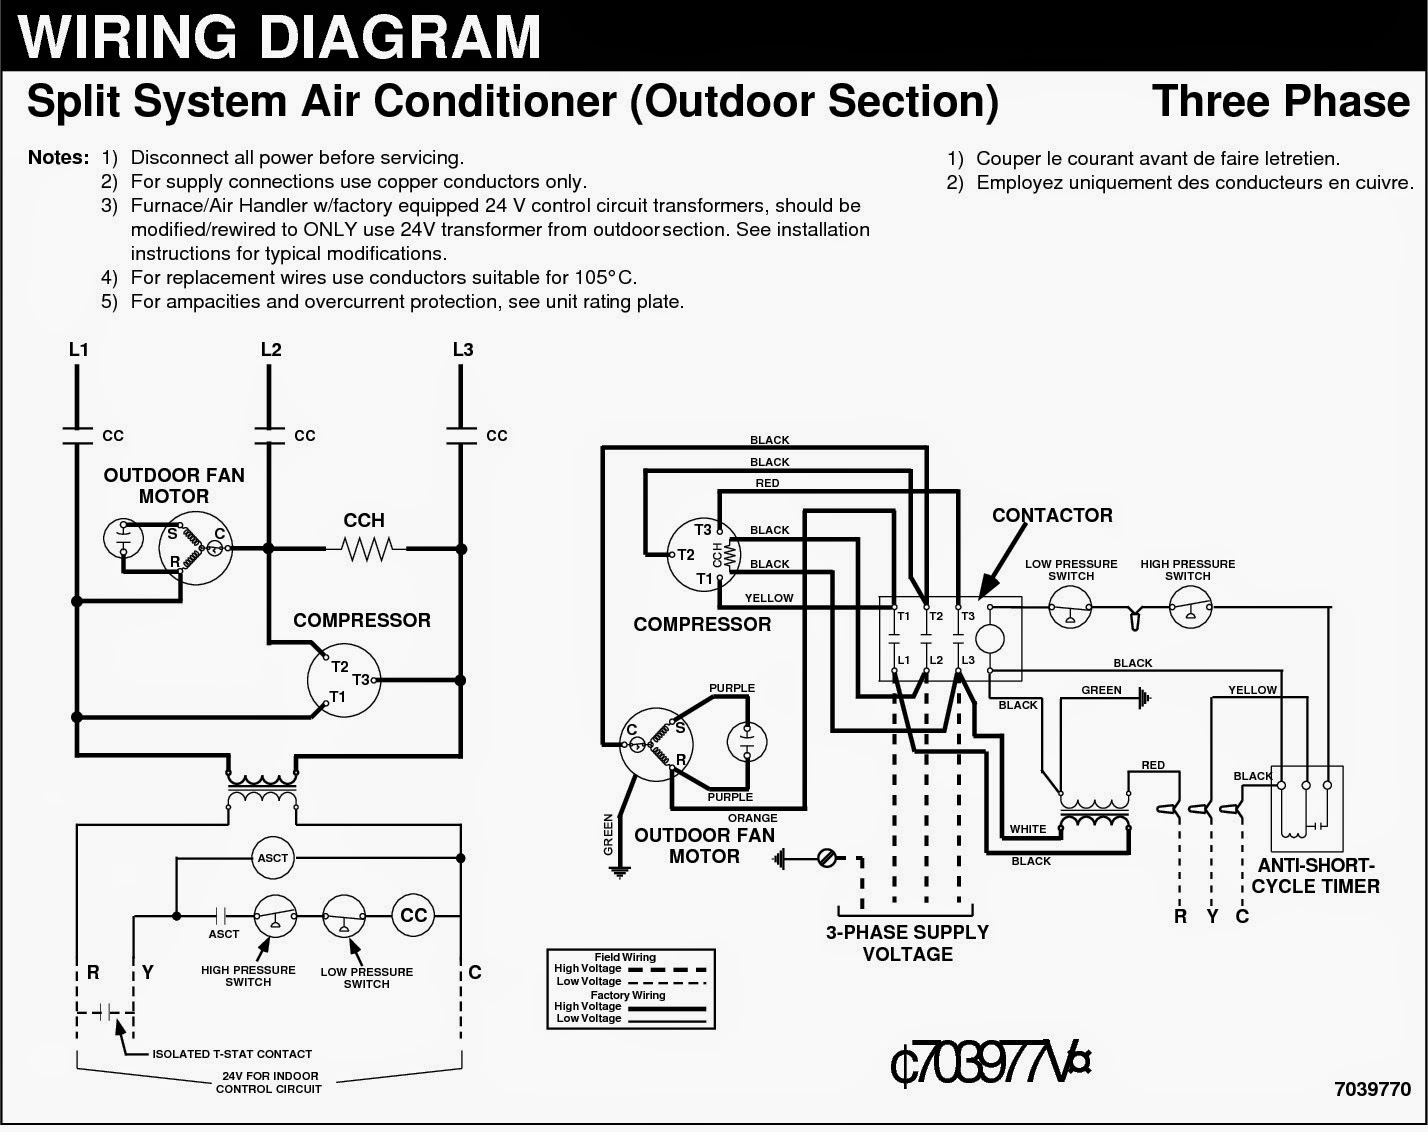 3+phase split unit ac wiring diagram split ac heating wiring diagrams carrier air conditioner wiring diagram at bakdesigns.co